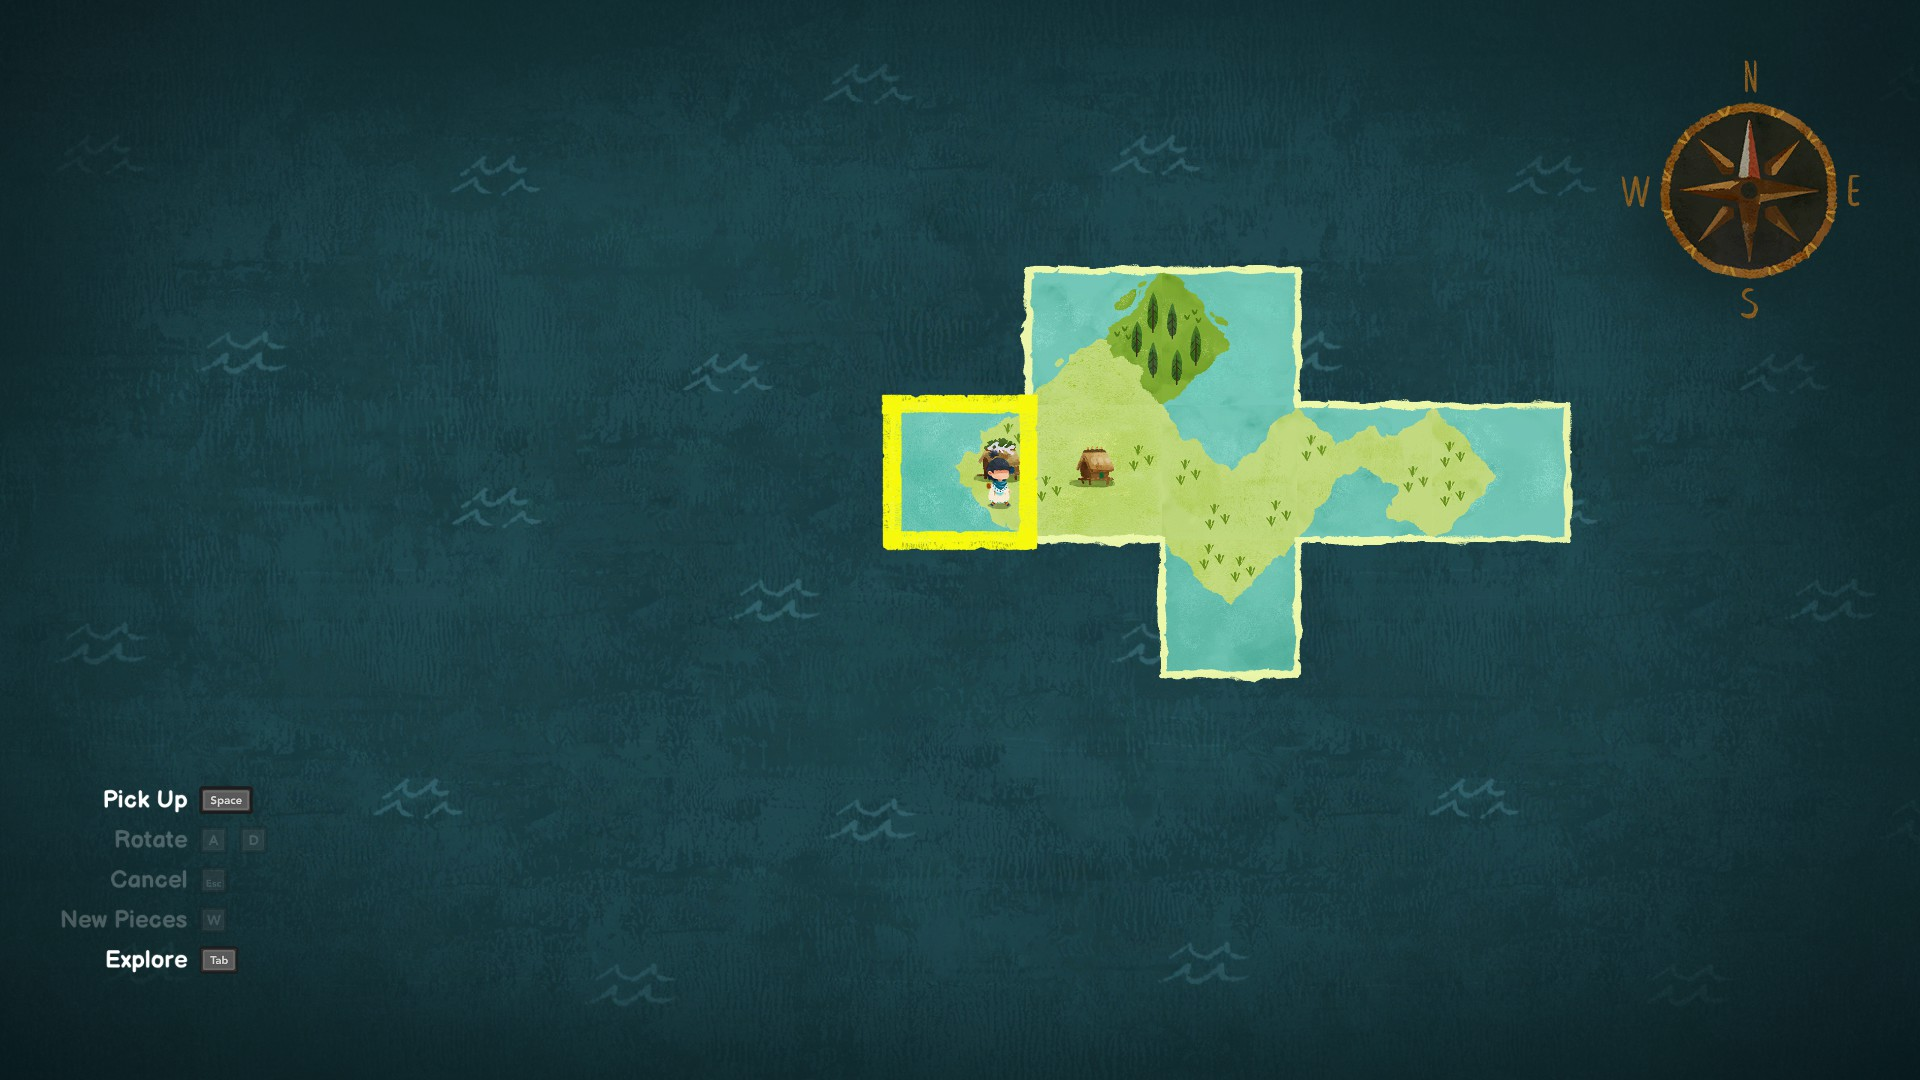 Carto. Map fragments laid out such that another house appears